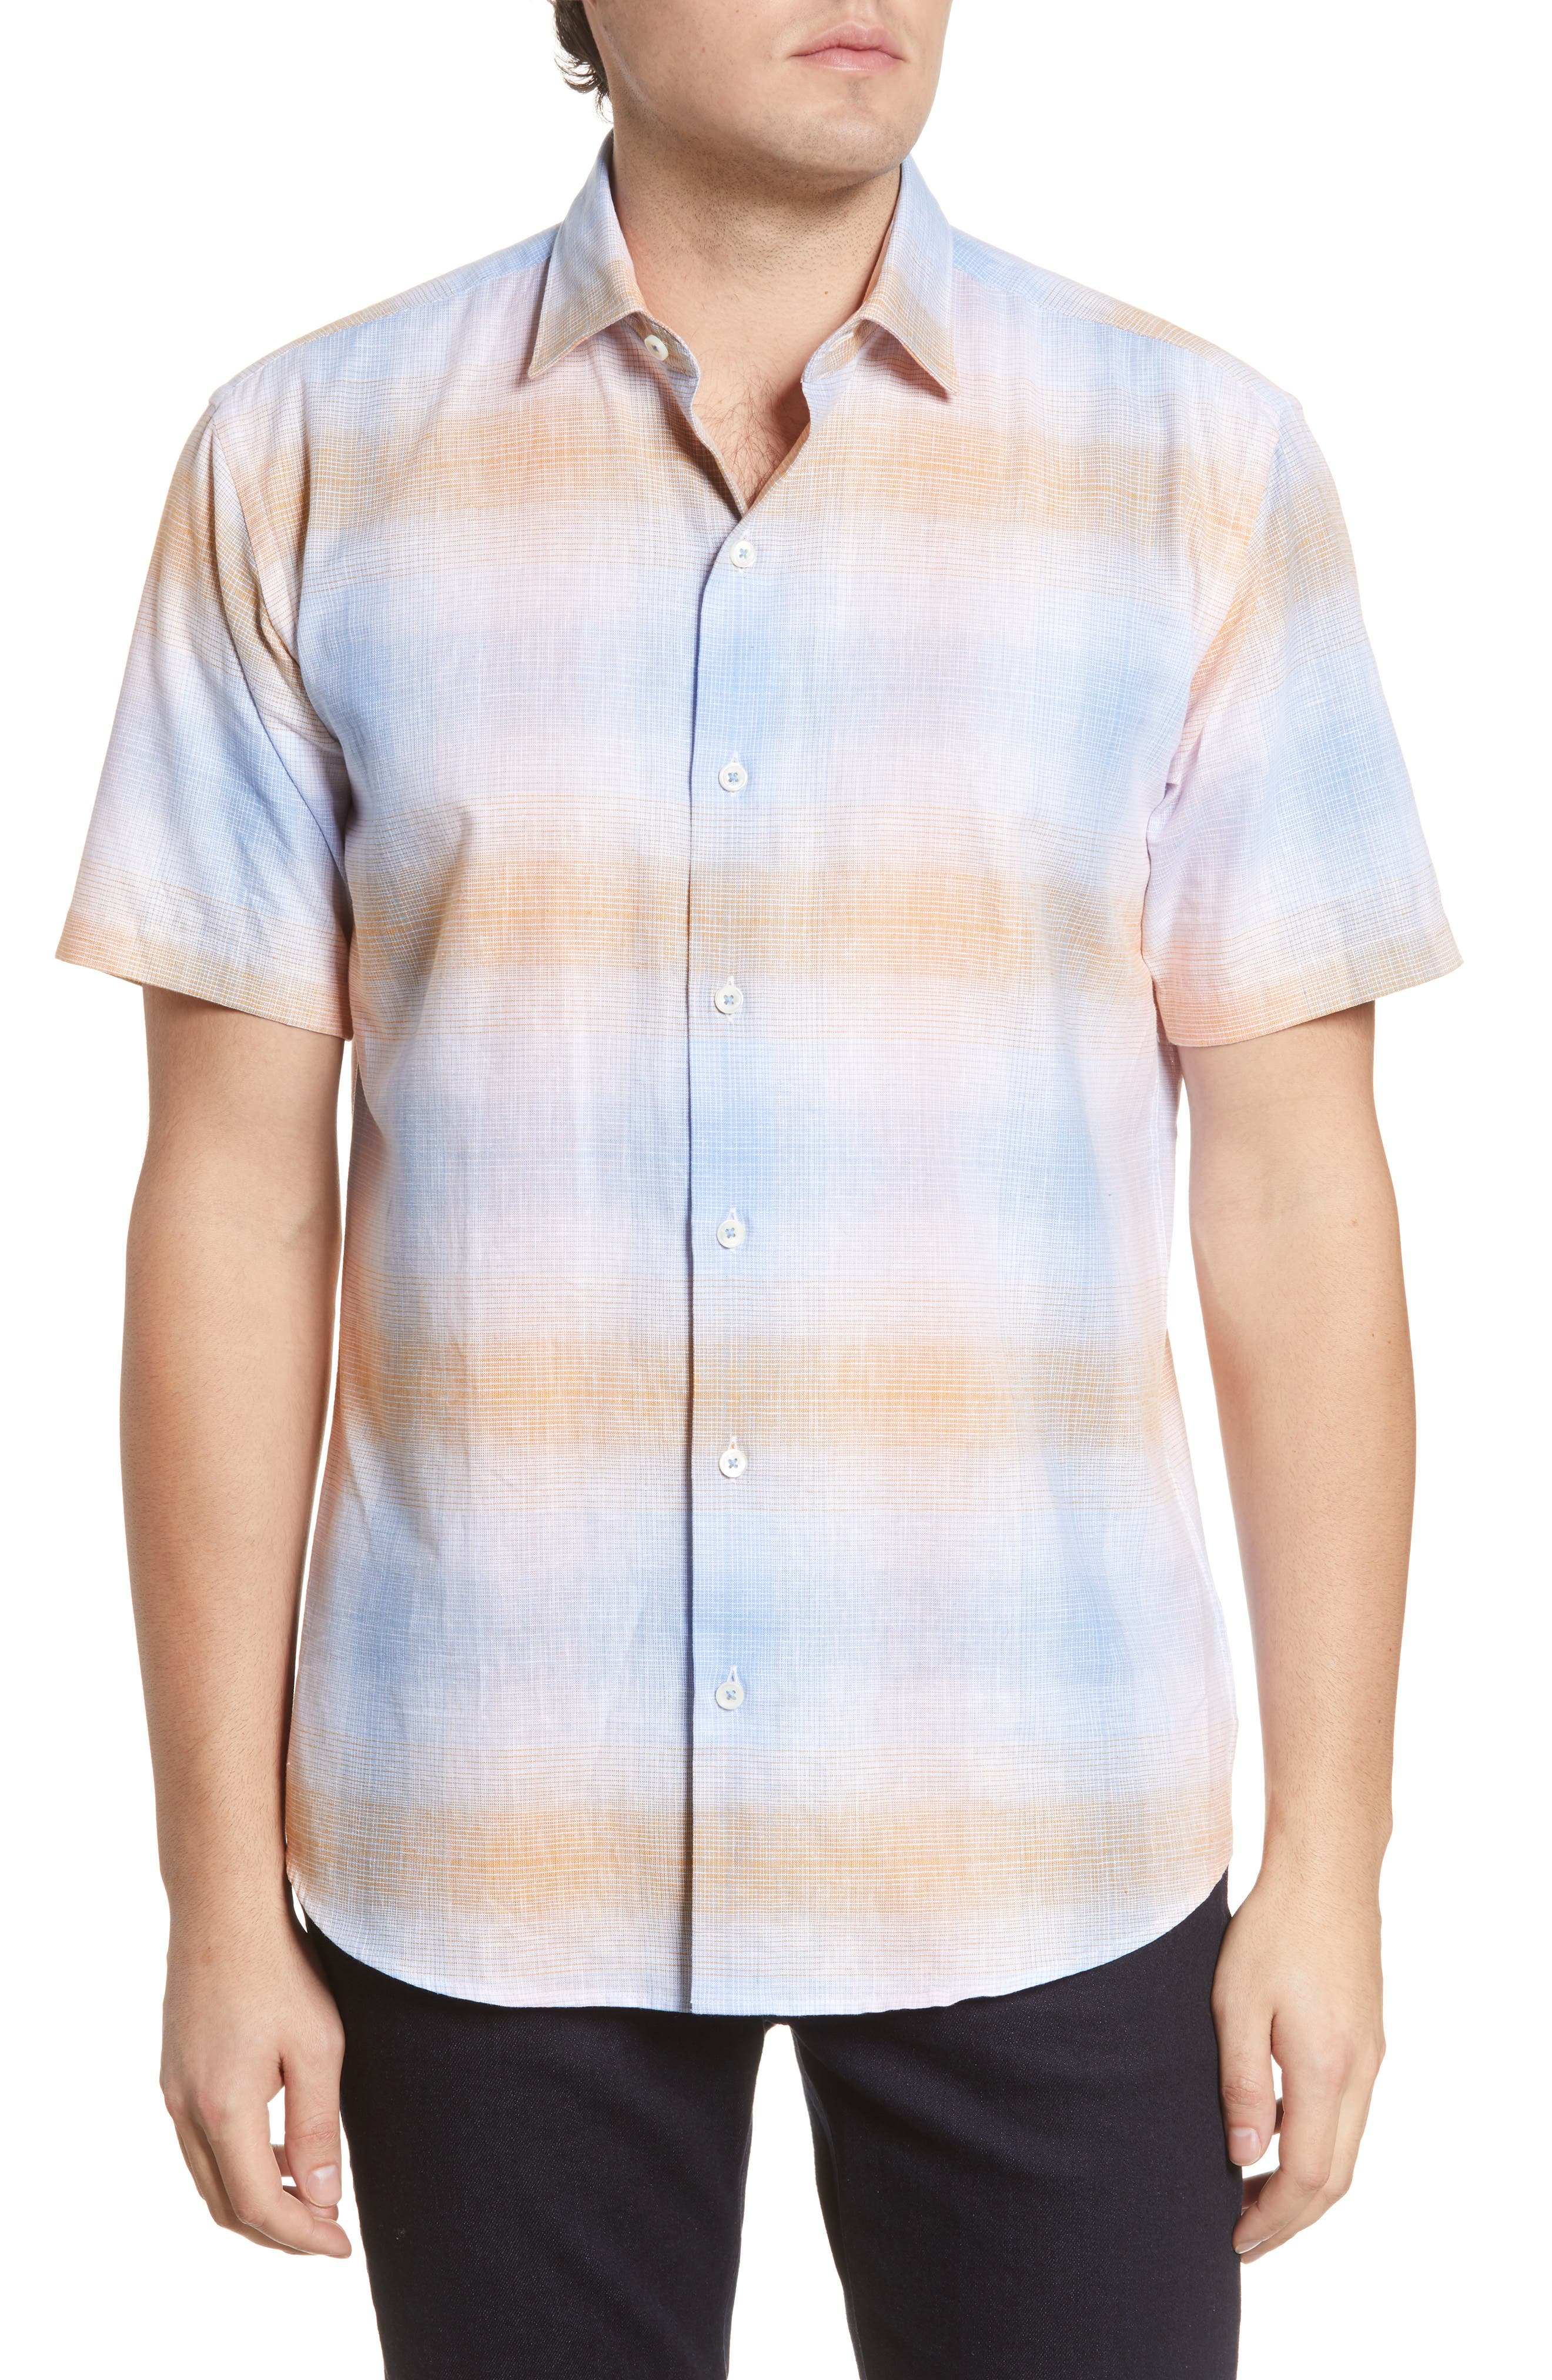 Gradient stripes bring ombre coloring to a casual plaid sport shirt made from soft cotton and breathable linen with a fit that\\\'s slim but easy to move in. Style Name: Bugatchi Shaped Fit Plaid Short Sleeve Button-Up Cotton & Linen Shirt. Style Number: 6011999. Available in stores.